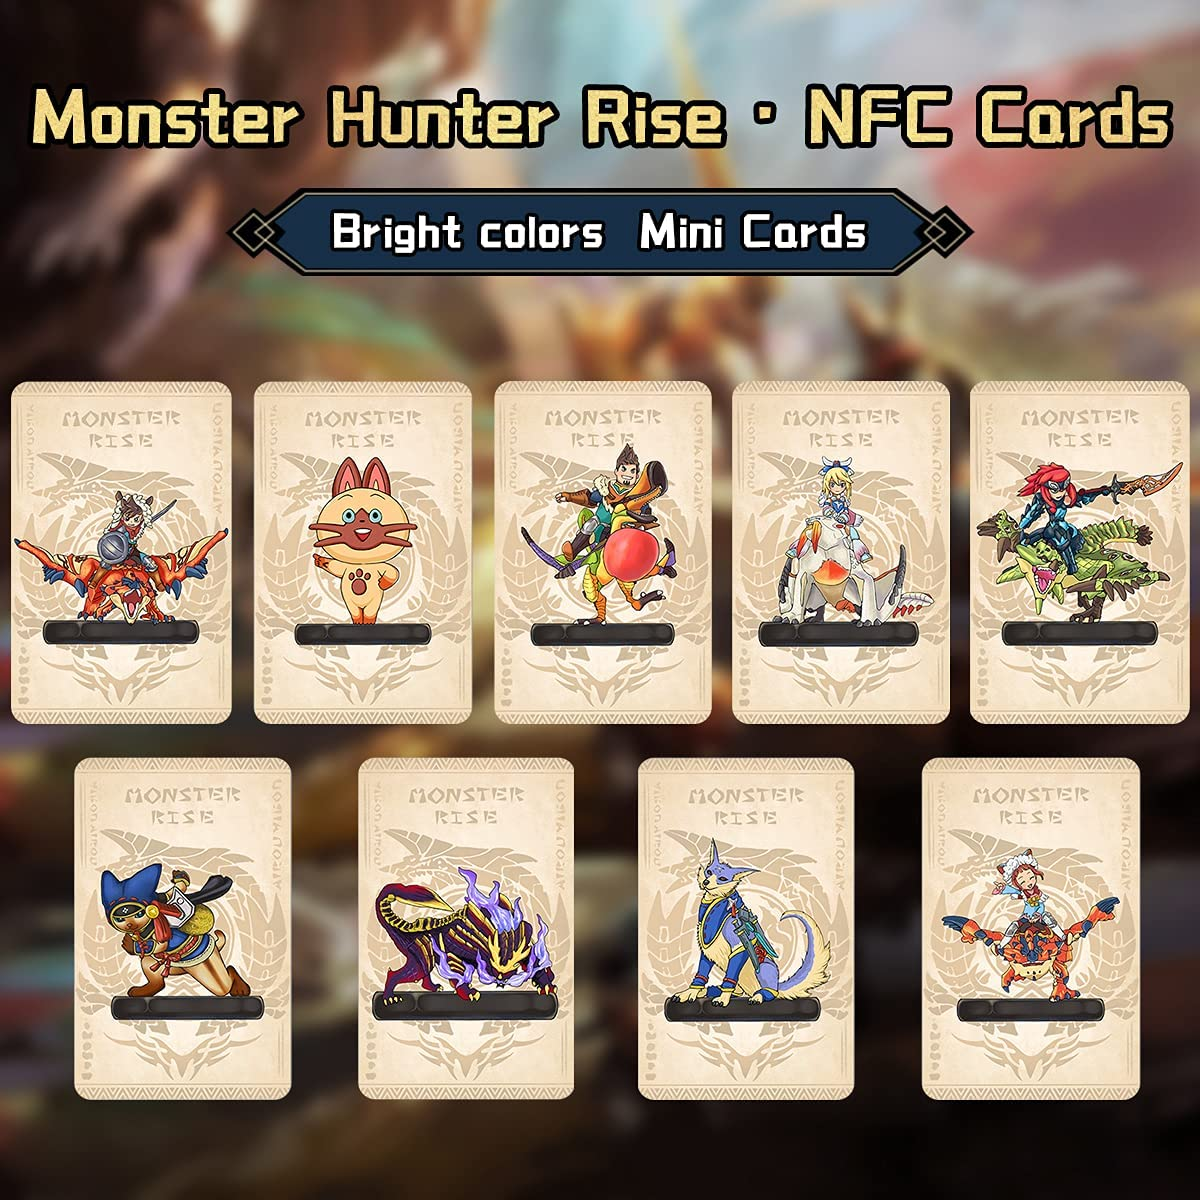 9PCS Monster Hunter Rise Amiibo NFC Cards,(2021), Palamute, Palico, Magnamalo, Mini Game Cards with Case, Compatible with Switch/Switch Lite/New 3DS: Toys & Games